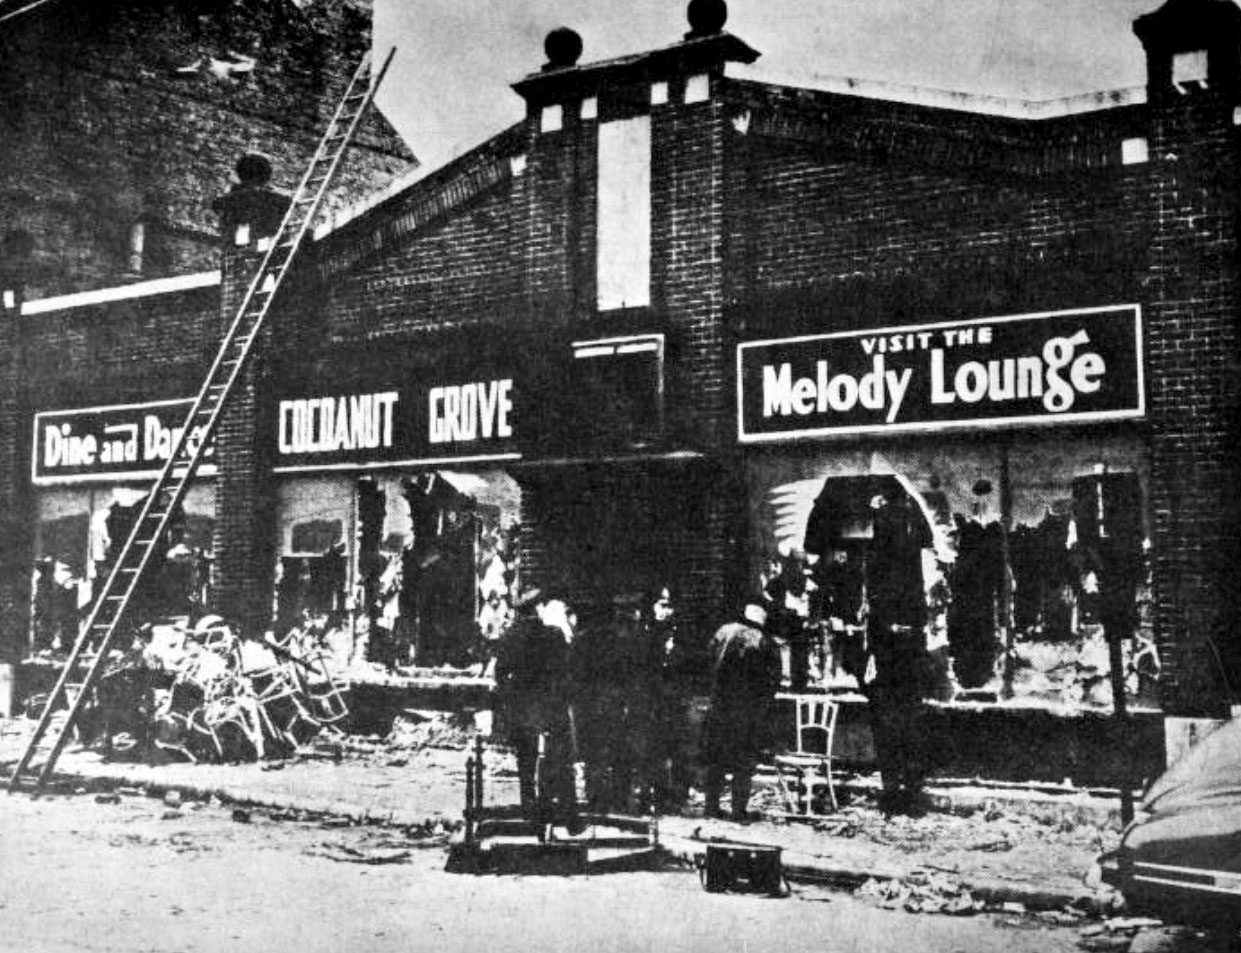 A view of the Melody Lounge, located in the basement of the Cocoanut Grove nightclub.